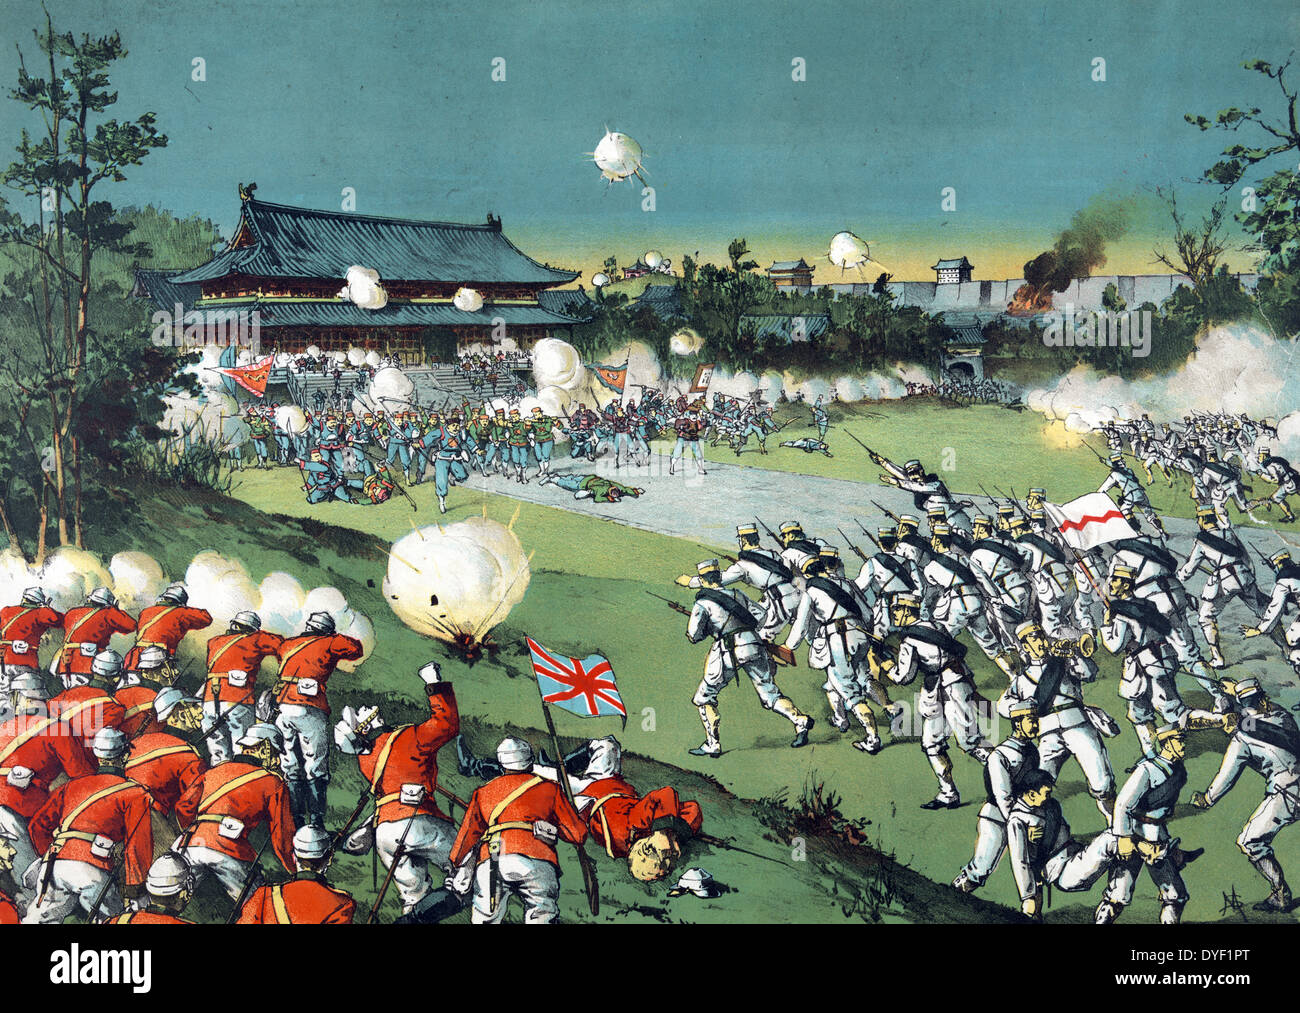 The fall of the Pekin castle, the hostile army being beaten away from the imperial castle by the allied armies by Torajiro - Stock Image